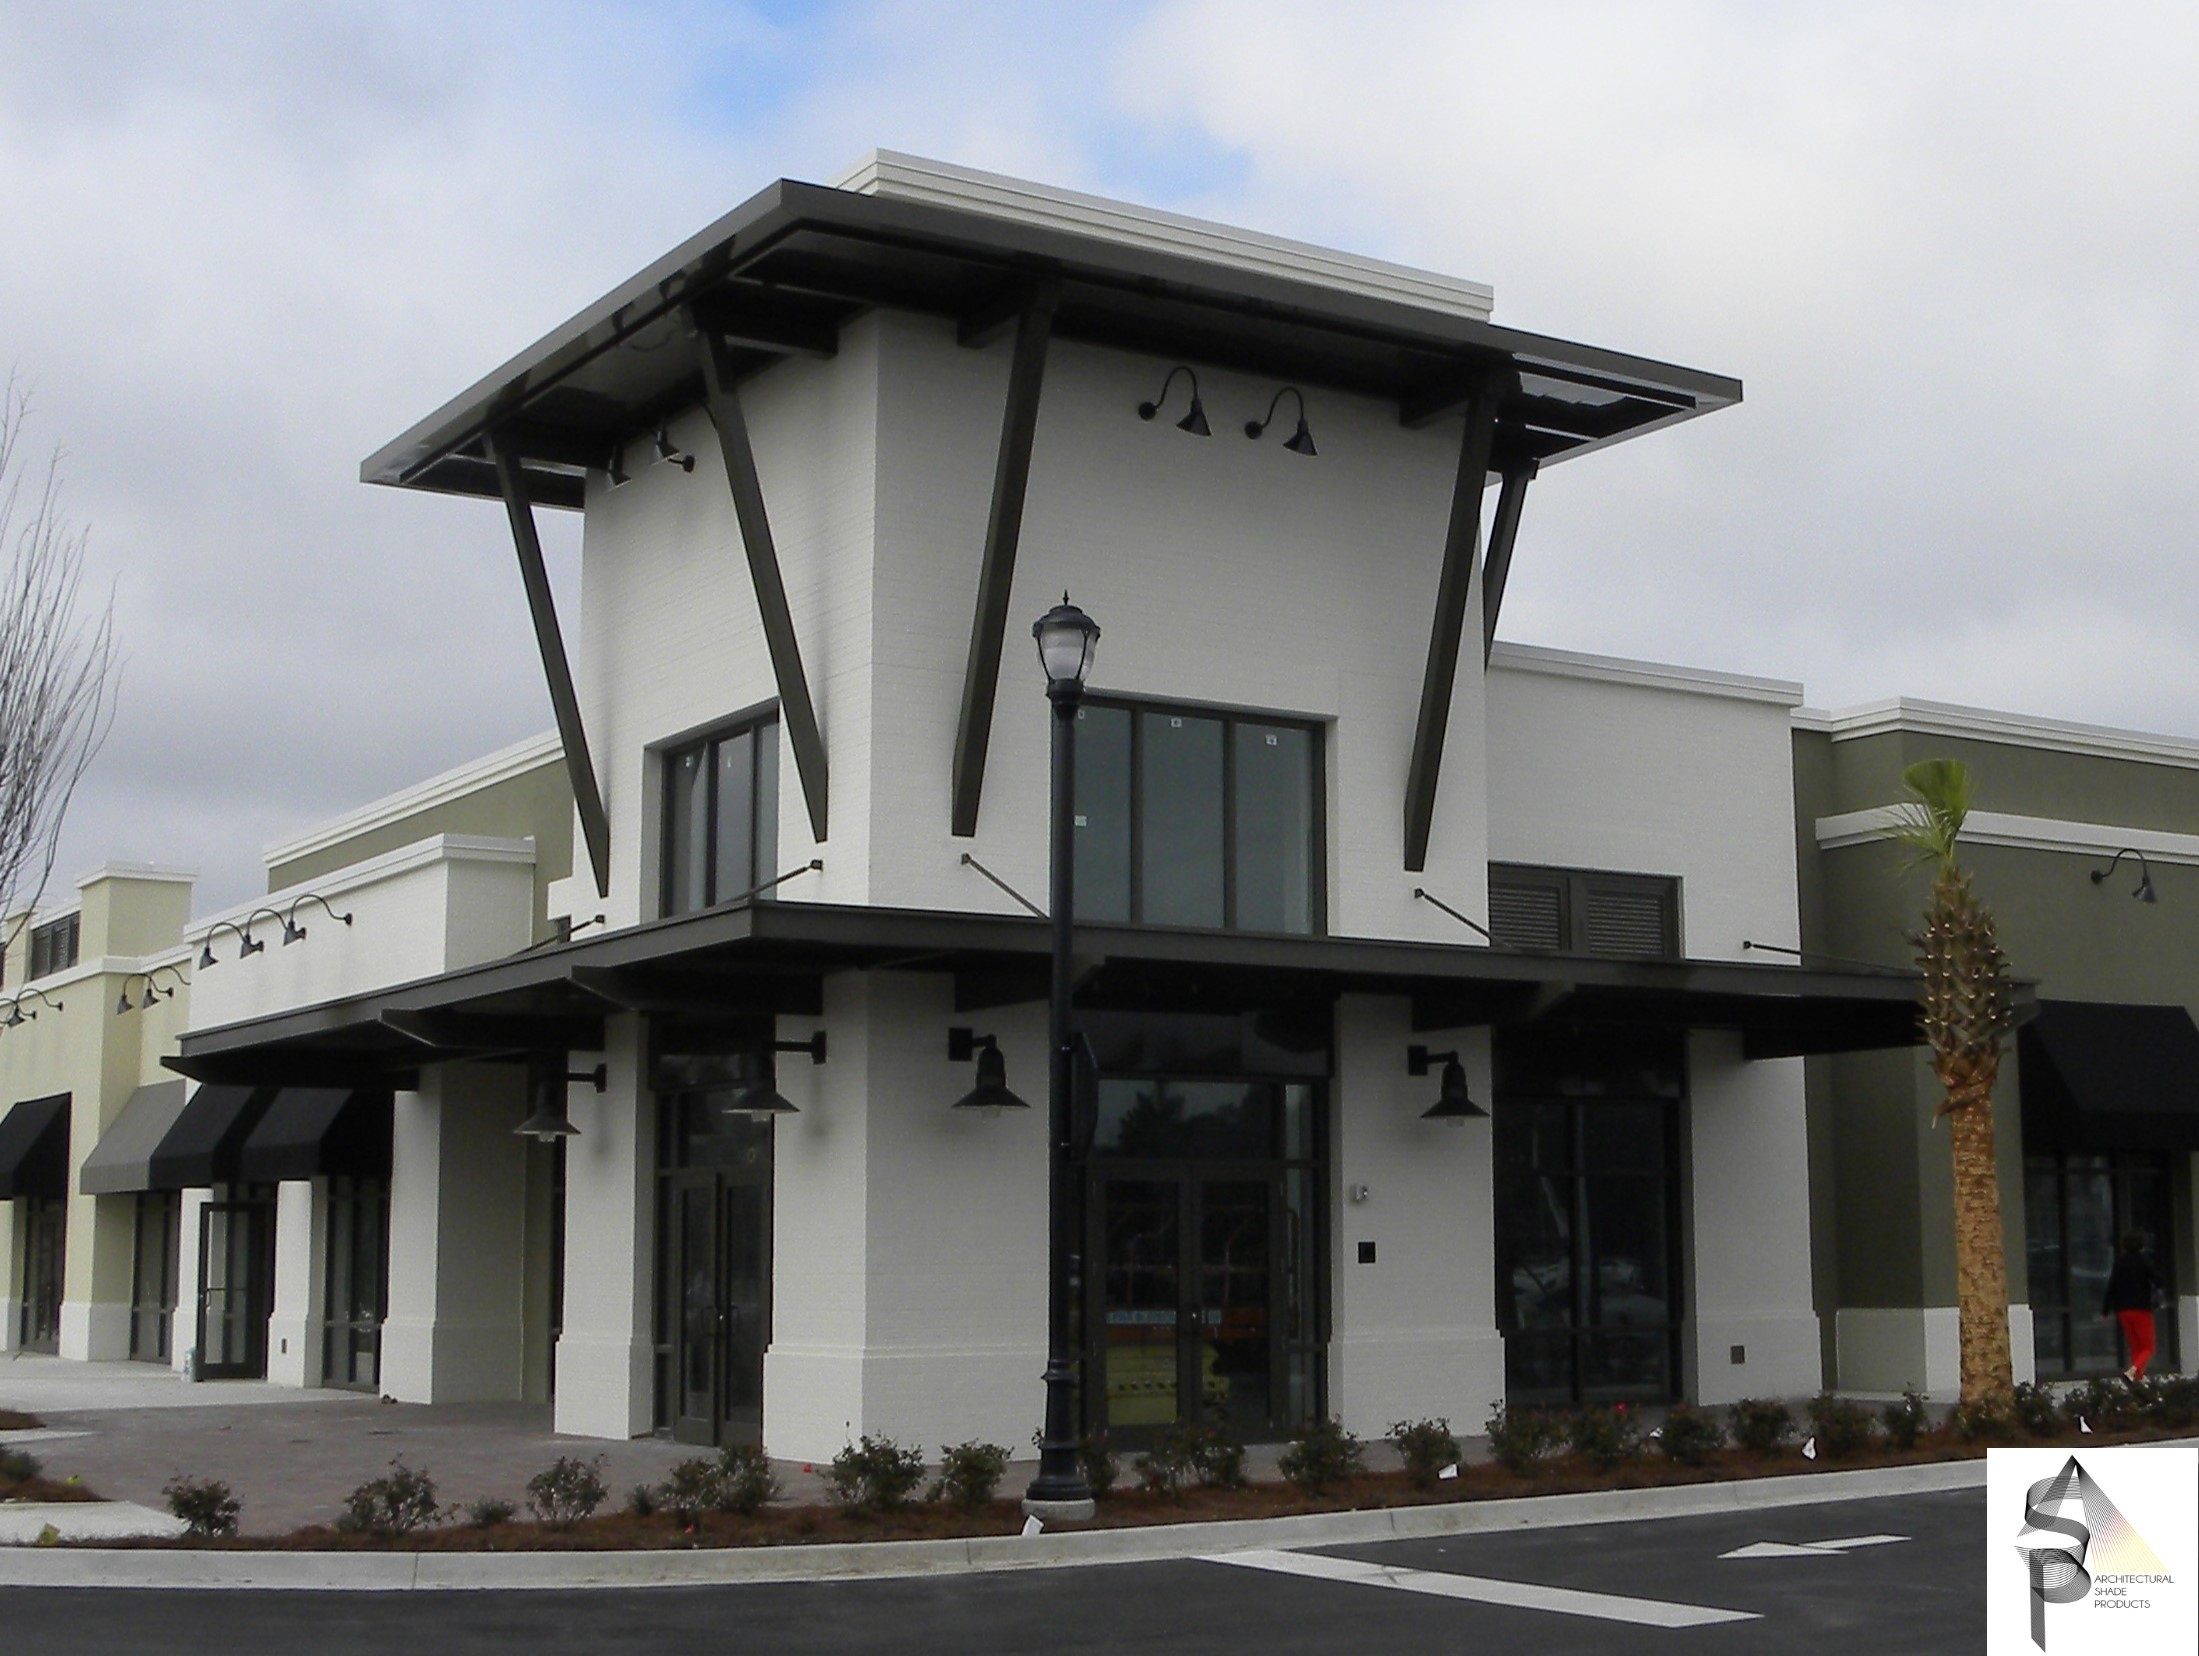 Publix Sawgrass Ponte Vedre FL & Architectural Canopies and Awnings | Precision Structural Engineering